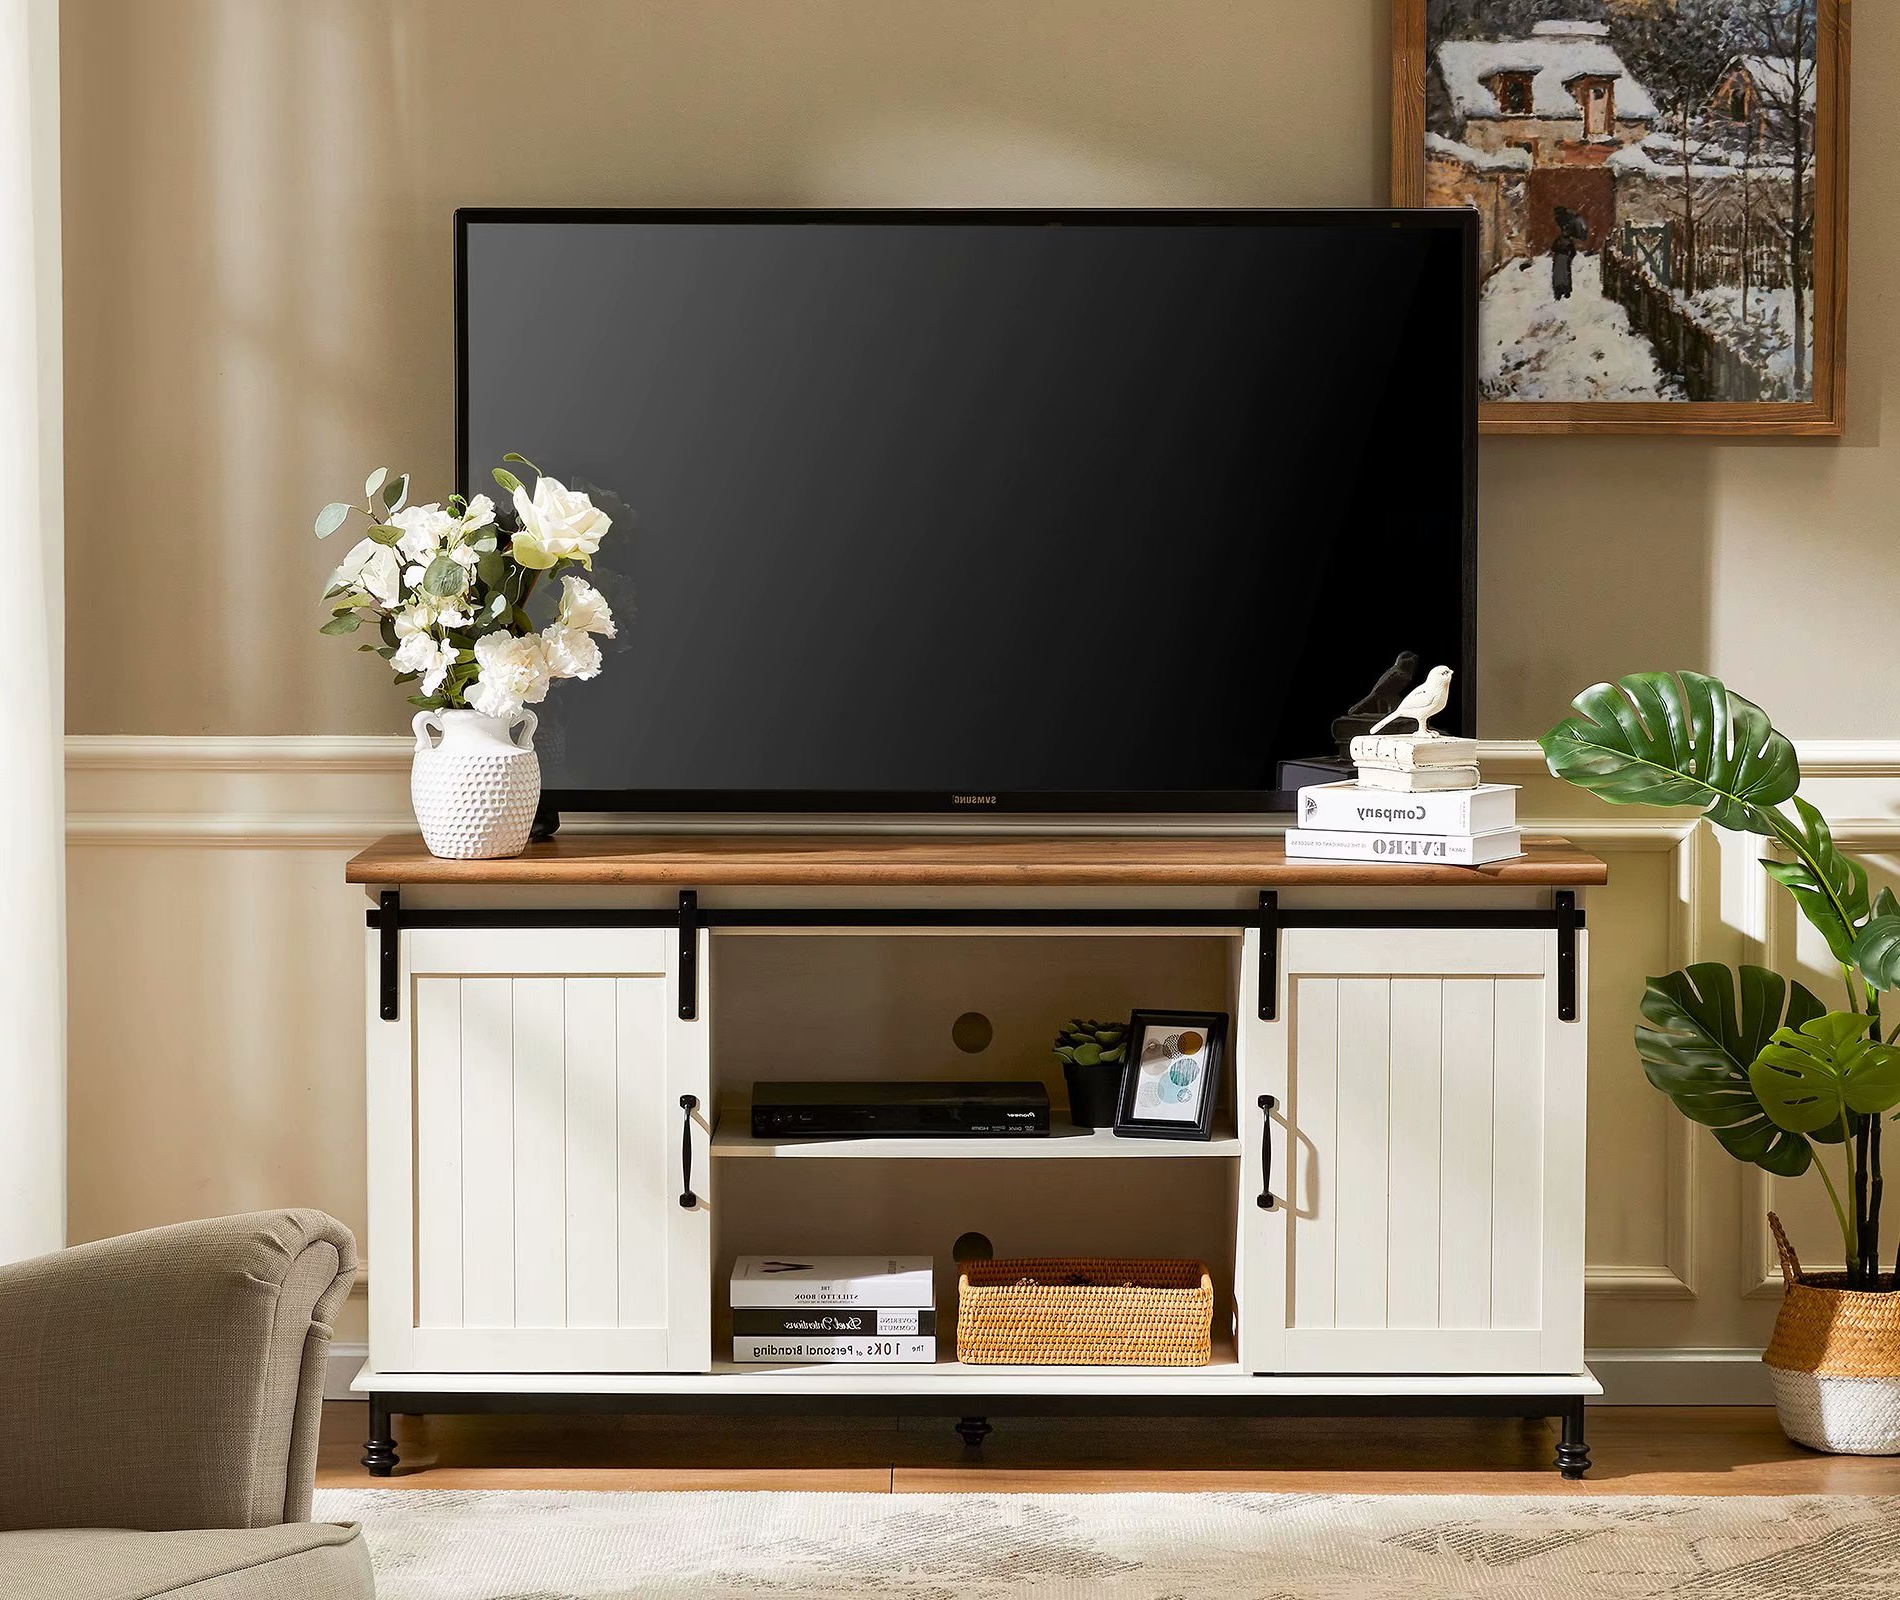 Wampat Wood Tv Stand Sliding Barn Door Modern Farmhouse For Well Liked Modern Sliding Door Tv Stands (View 1 of 10)